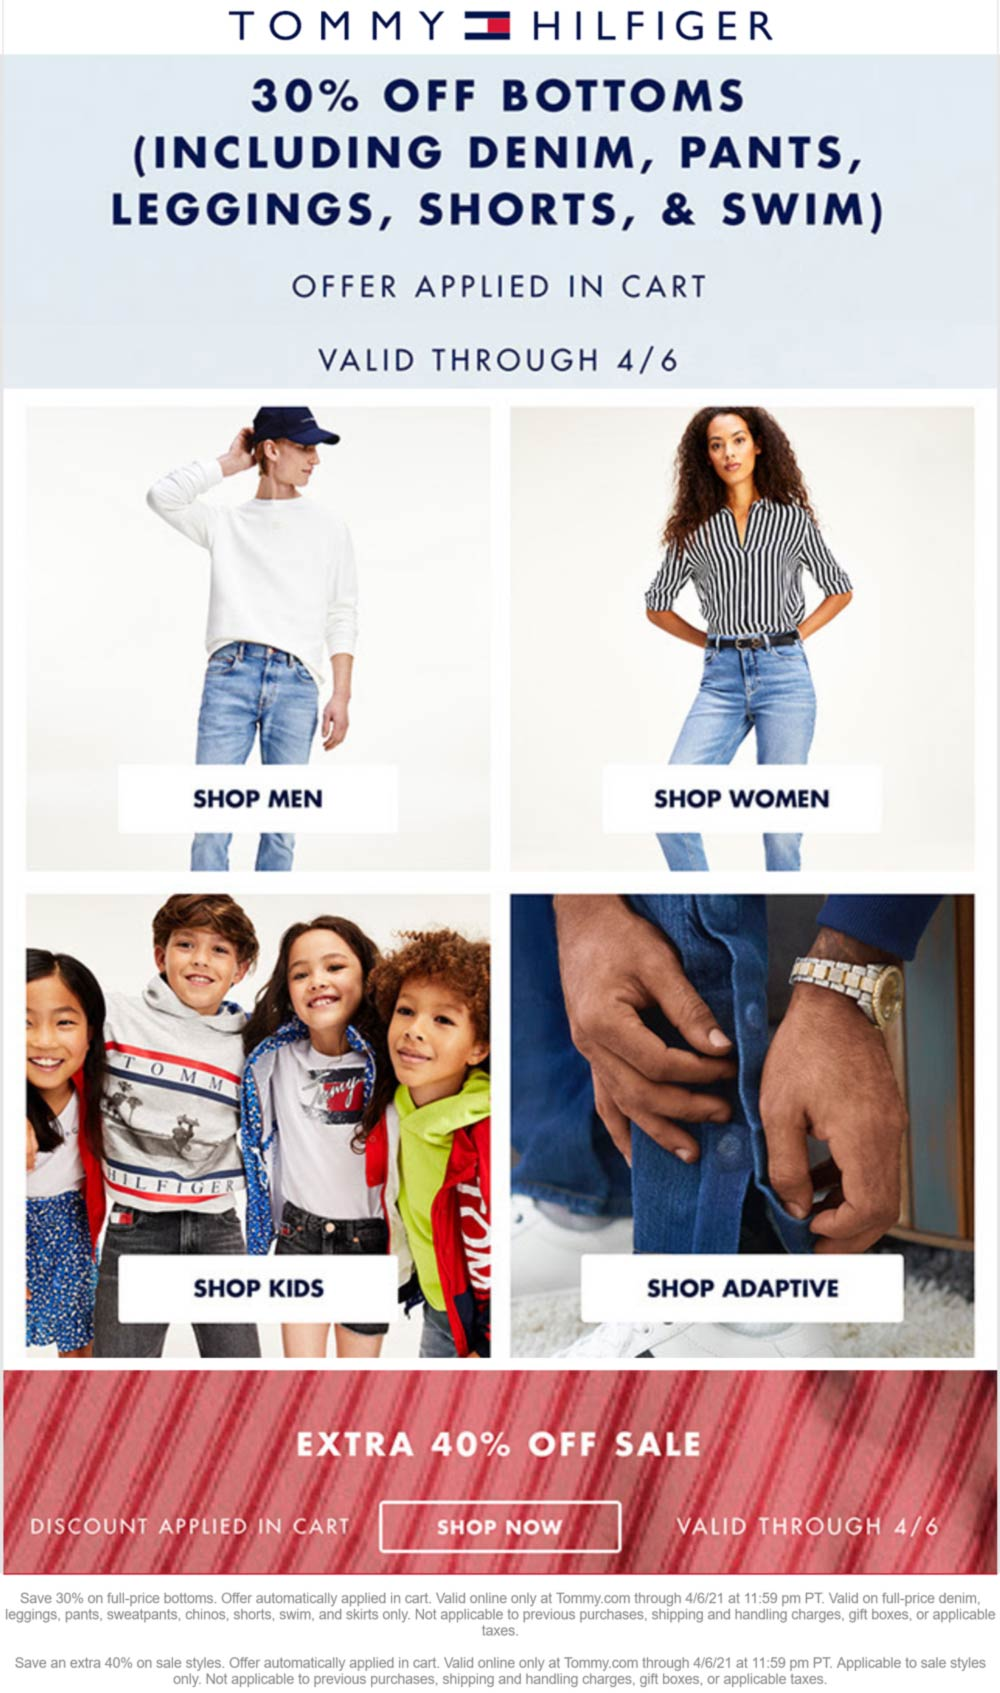 Tommy Hilfiger stores Coupon  30% off bottoms, 40% off sale items online at Tommy Hilfiger #tommyhilfiger